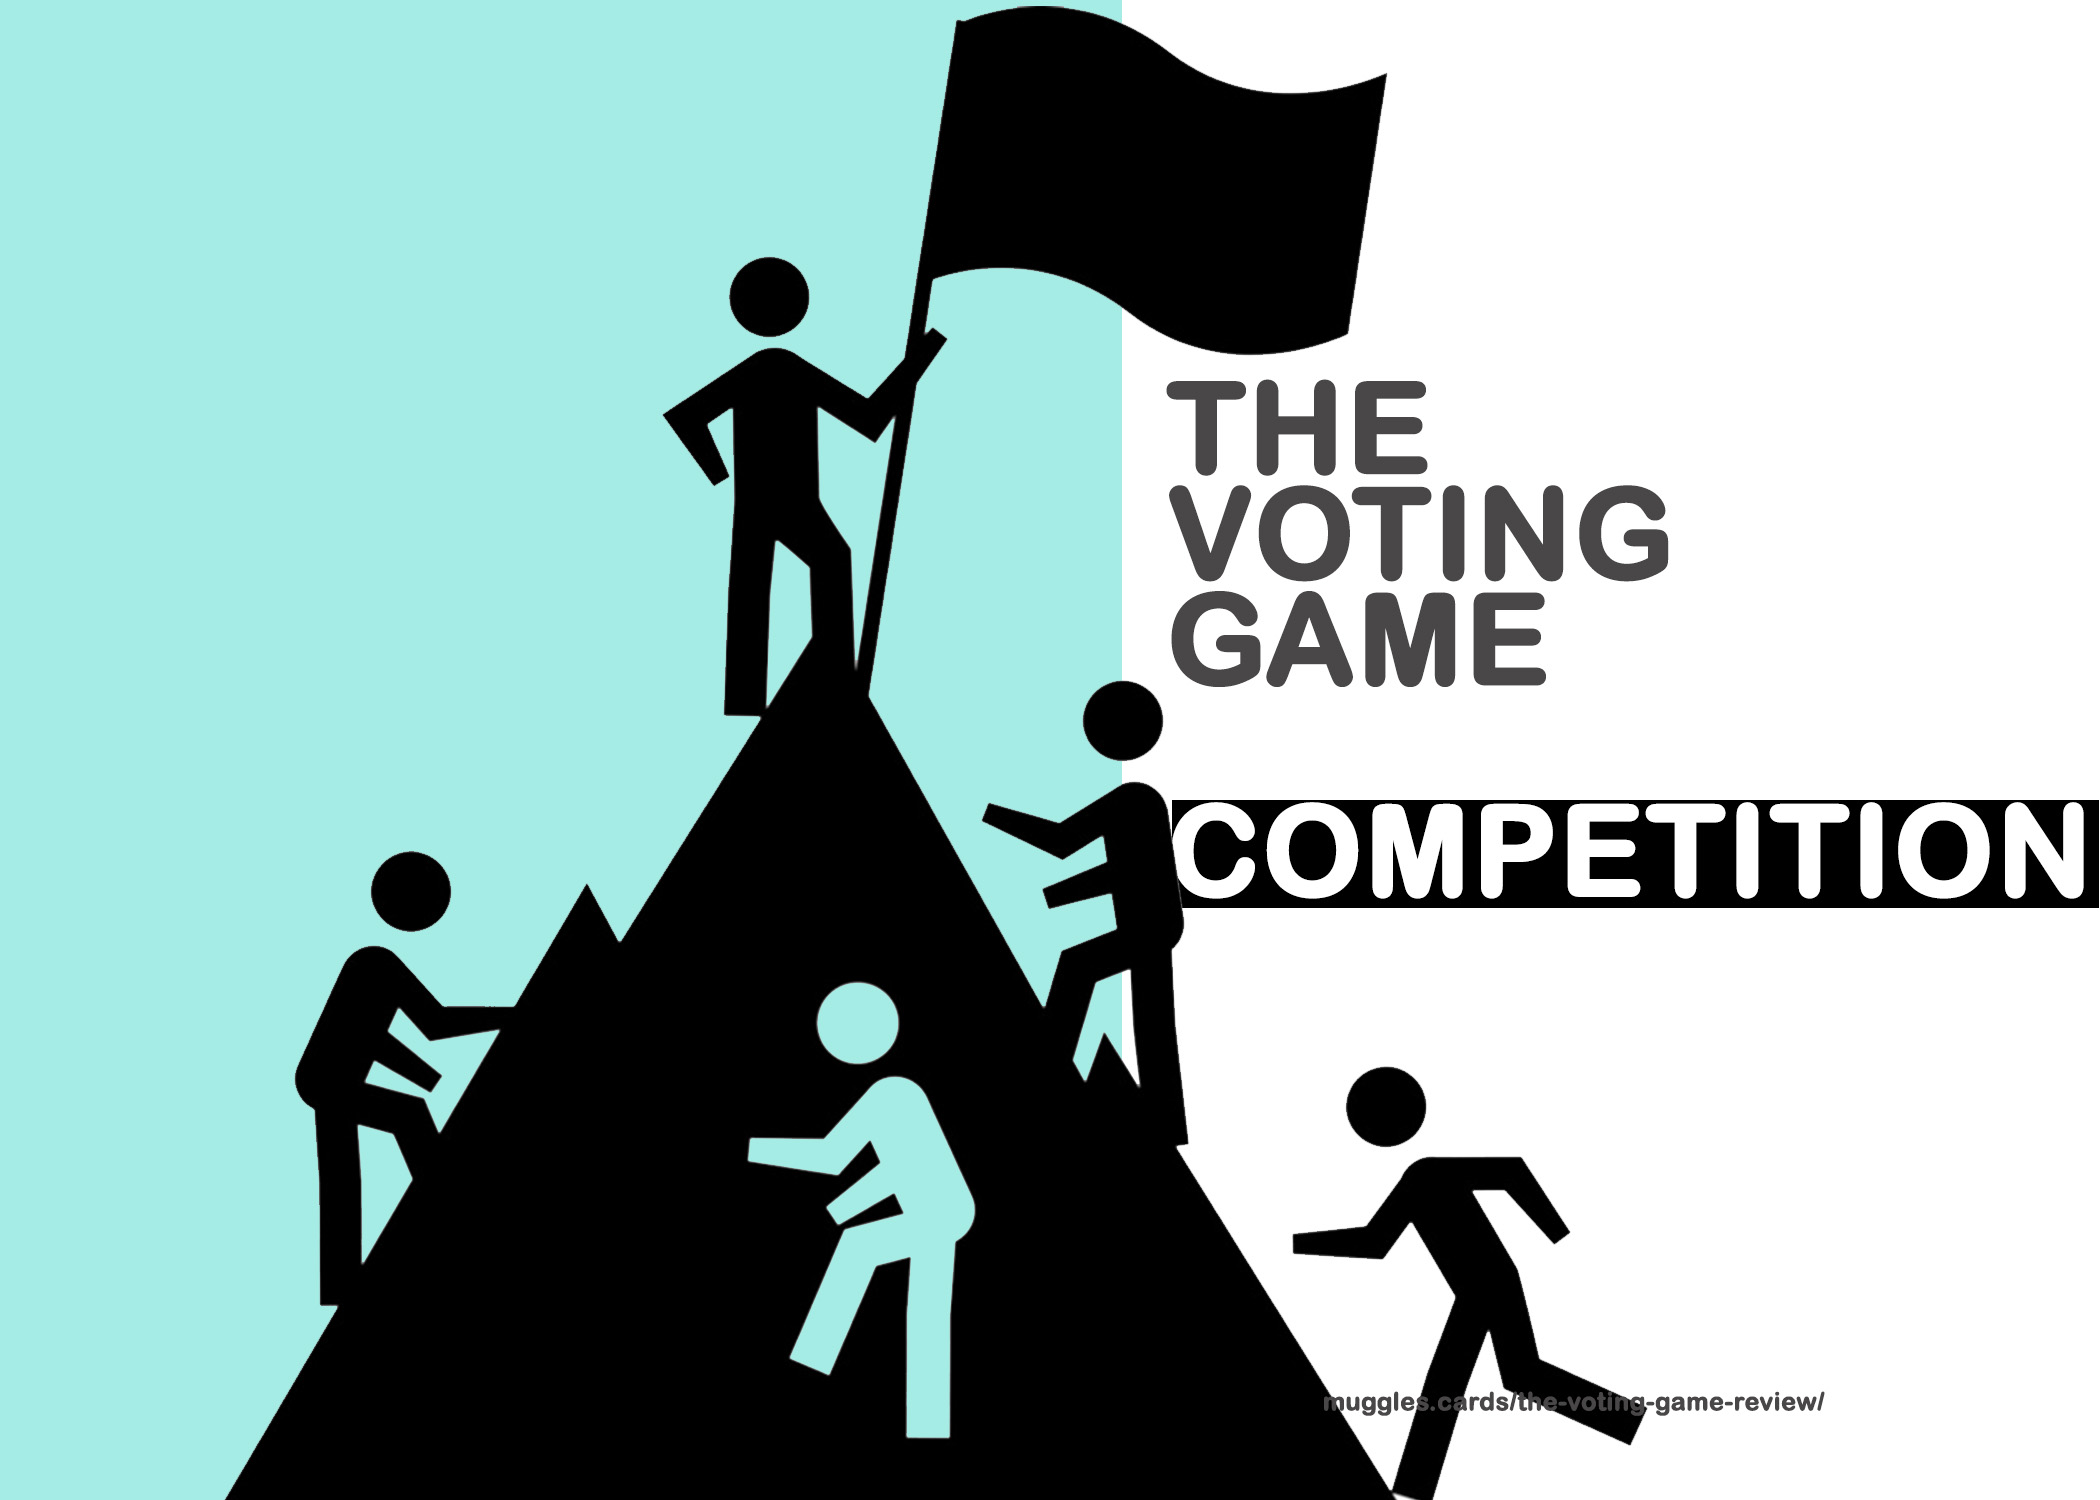 The Voting Game COMPETITION